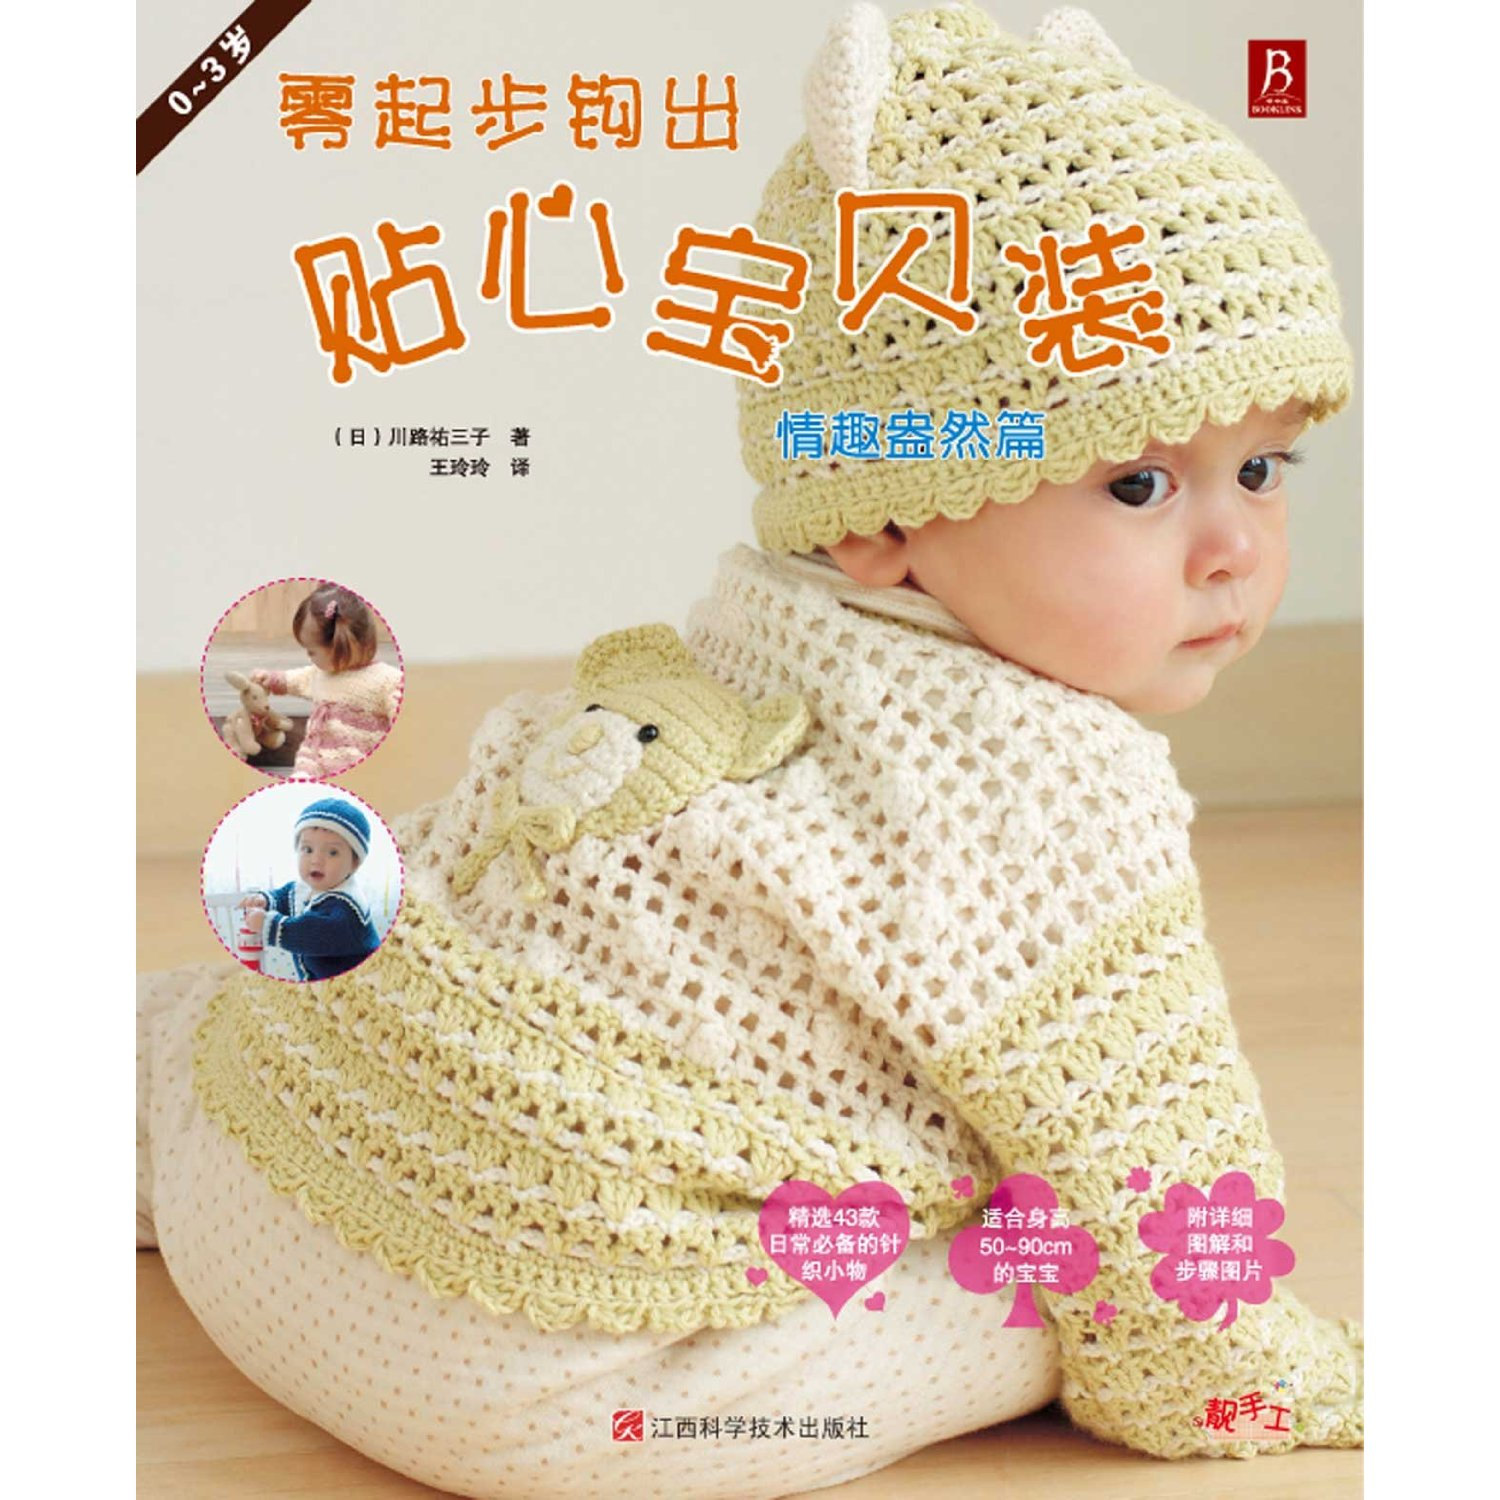 Cute Crochet Baby Clothes and Zakka Goods by Inflatedegostudio on